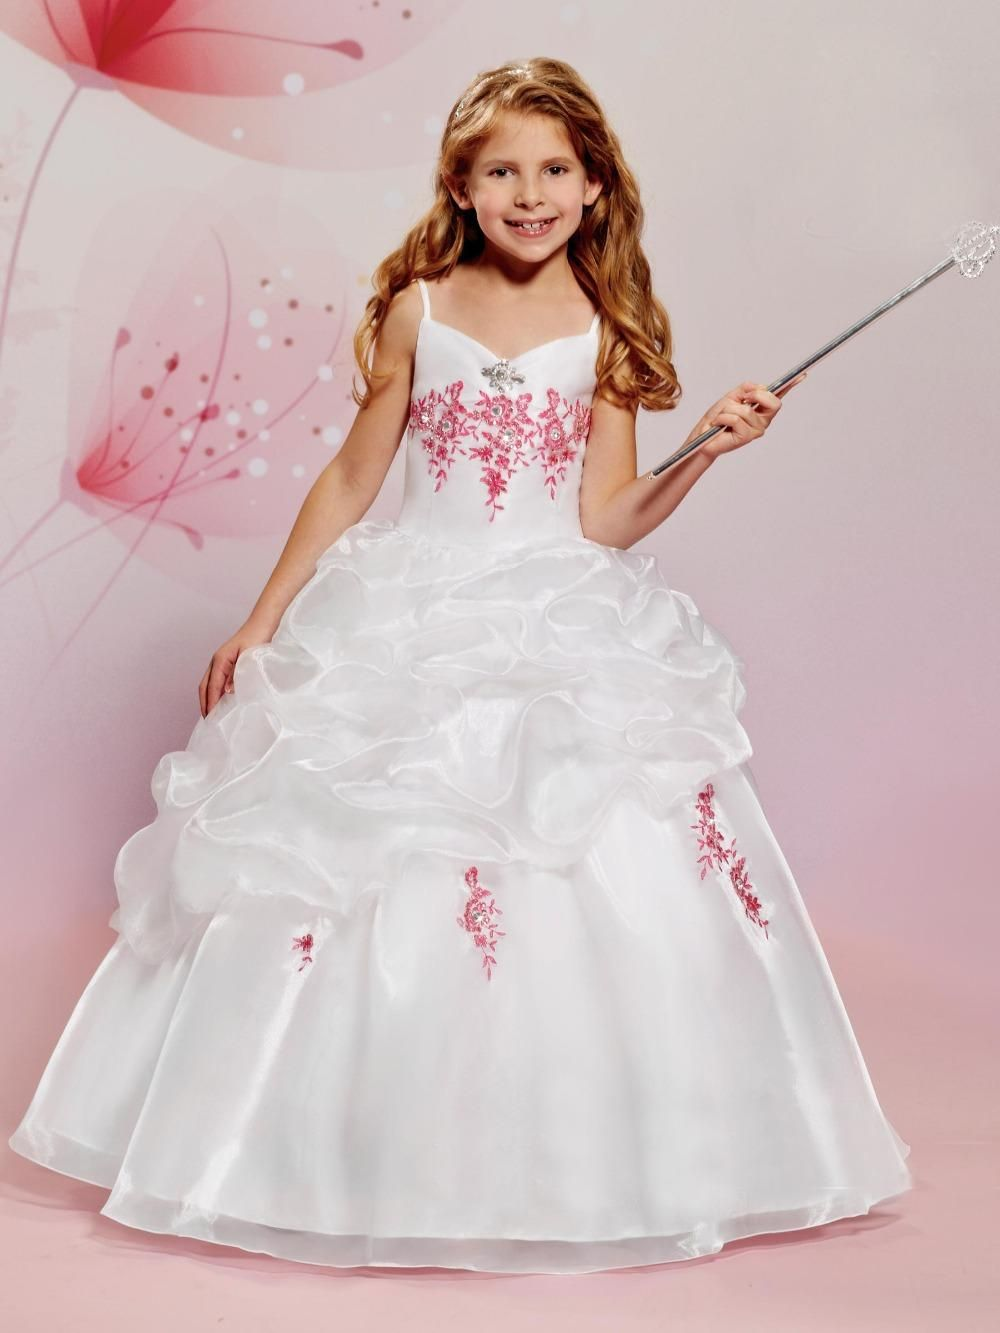 Vintage organza flower girl dresses for weddings ball gown 2016 vintage organza flower girl dresses for weddings ball gown 2016 cheap white v neck crystal kids beauty pageant dresses toddler party dresses baby easter izmirmasajfo